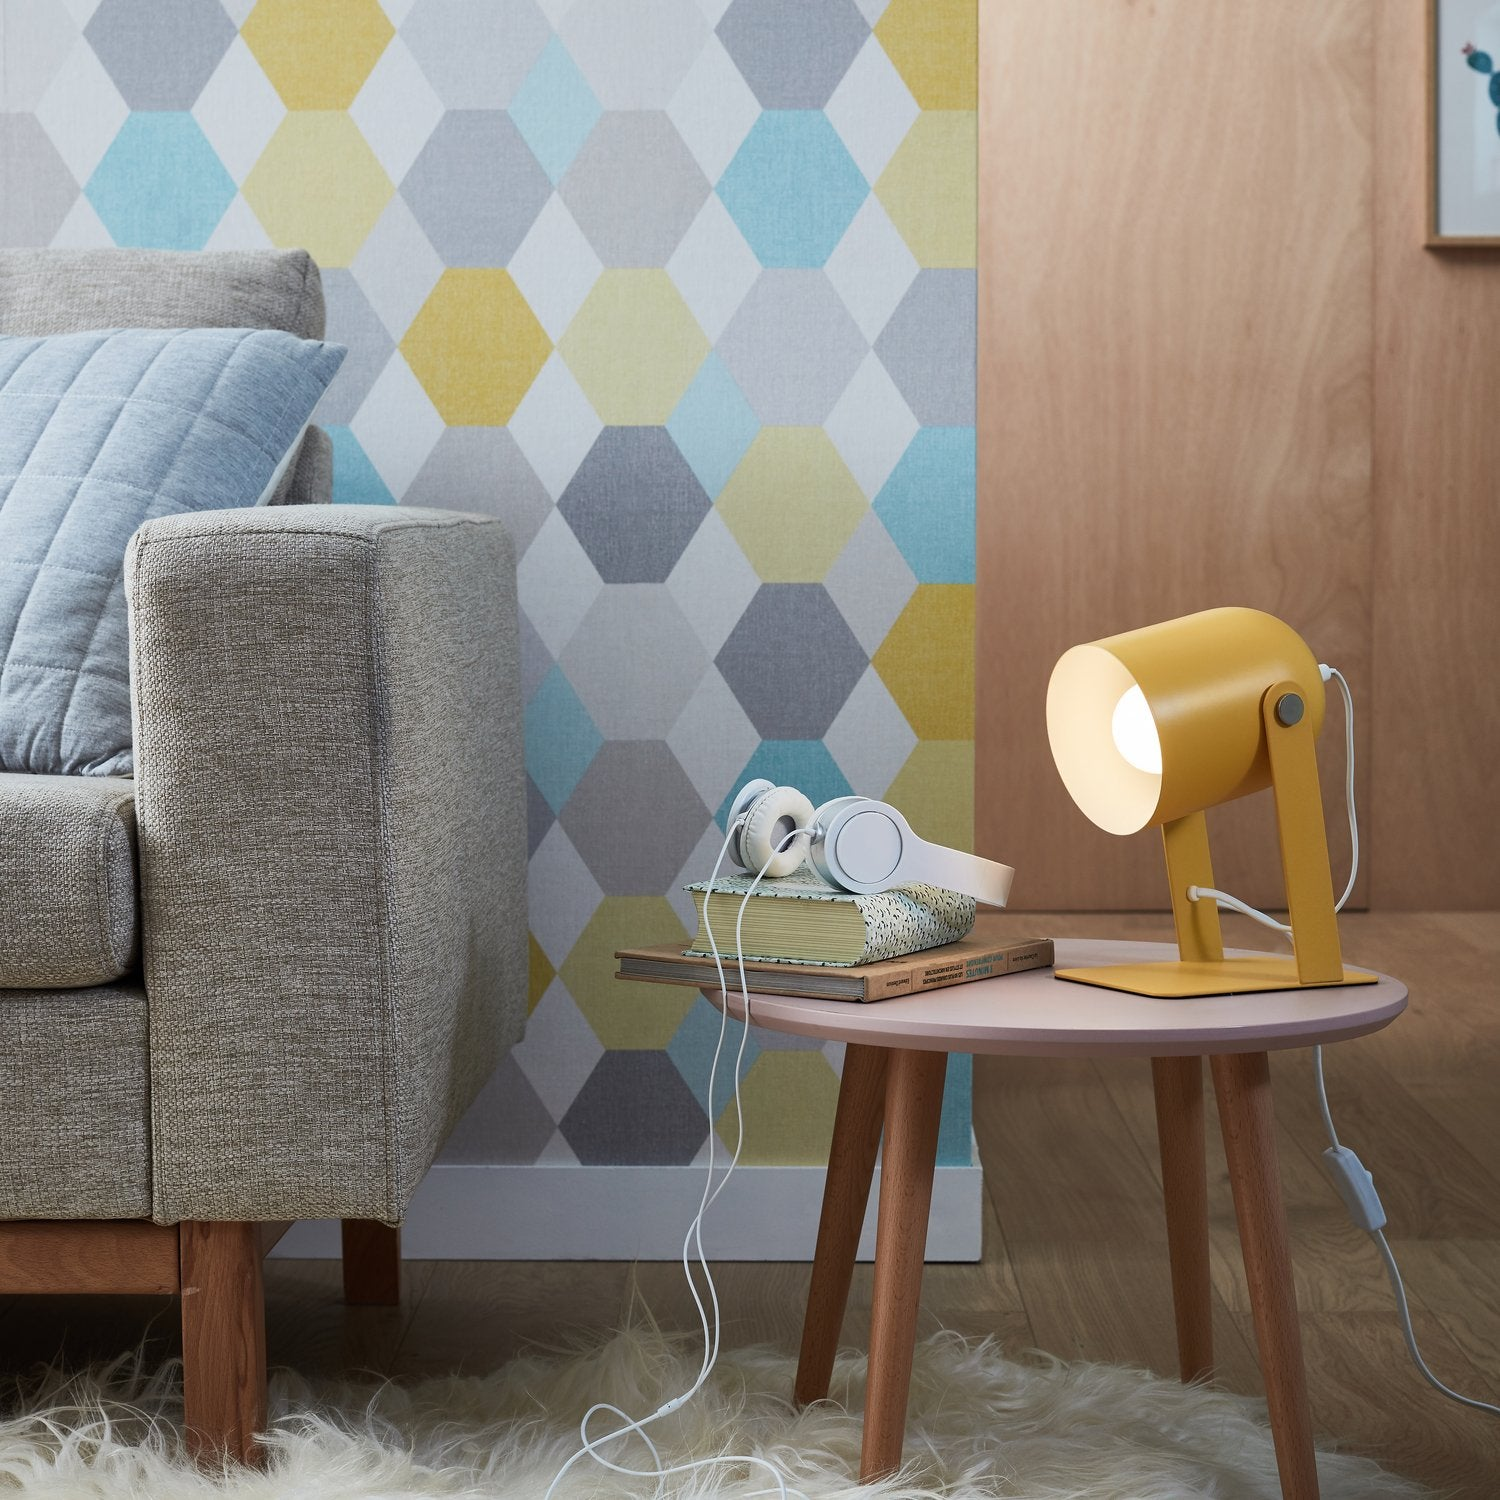 Une Lampe A Poser Jaune Au Style Scandinave Leroy Merlin